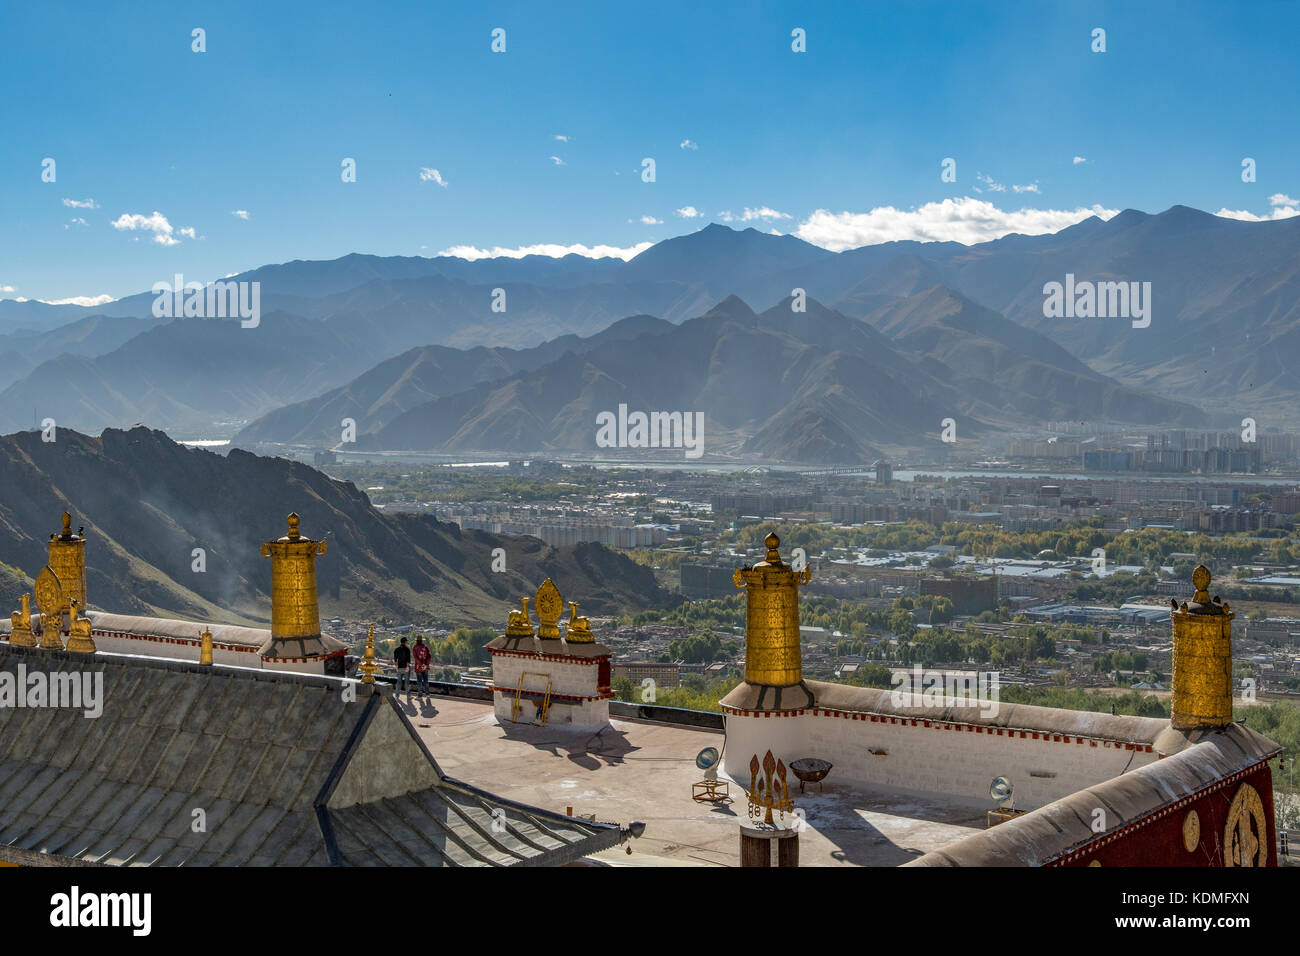 View of Lhasa from Drepung Monastery, Tibet, China - Stock Image